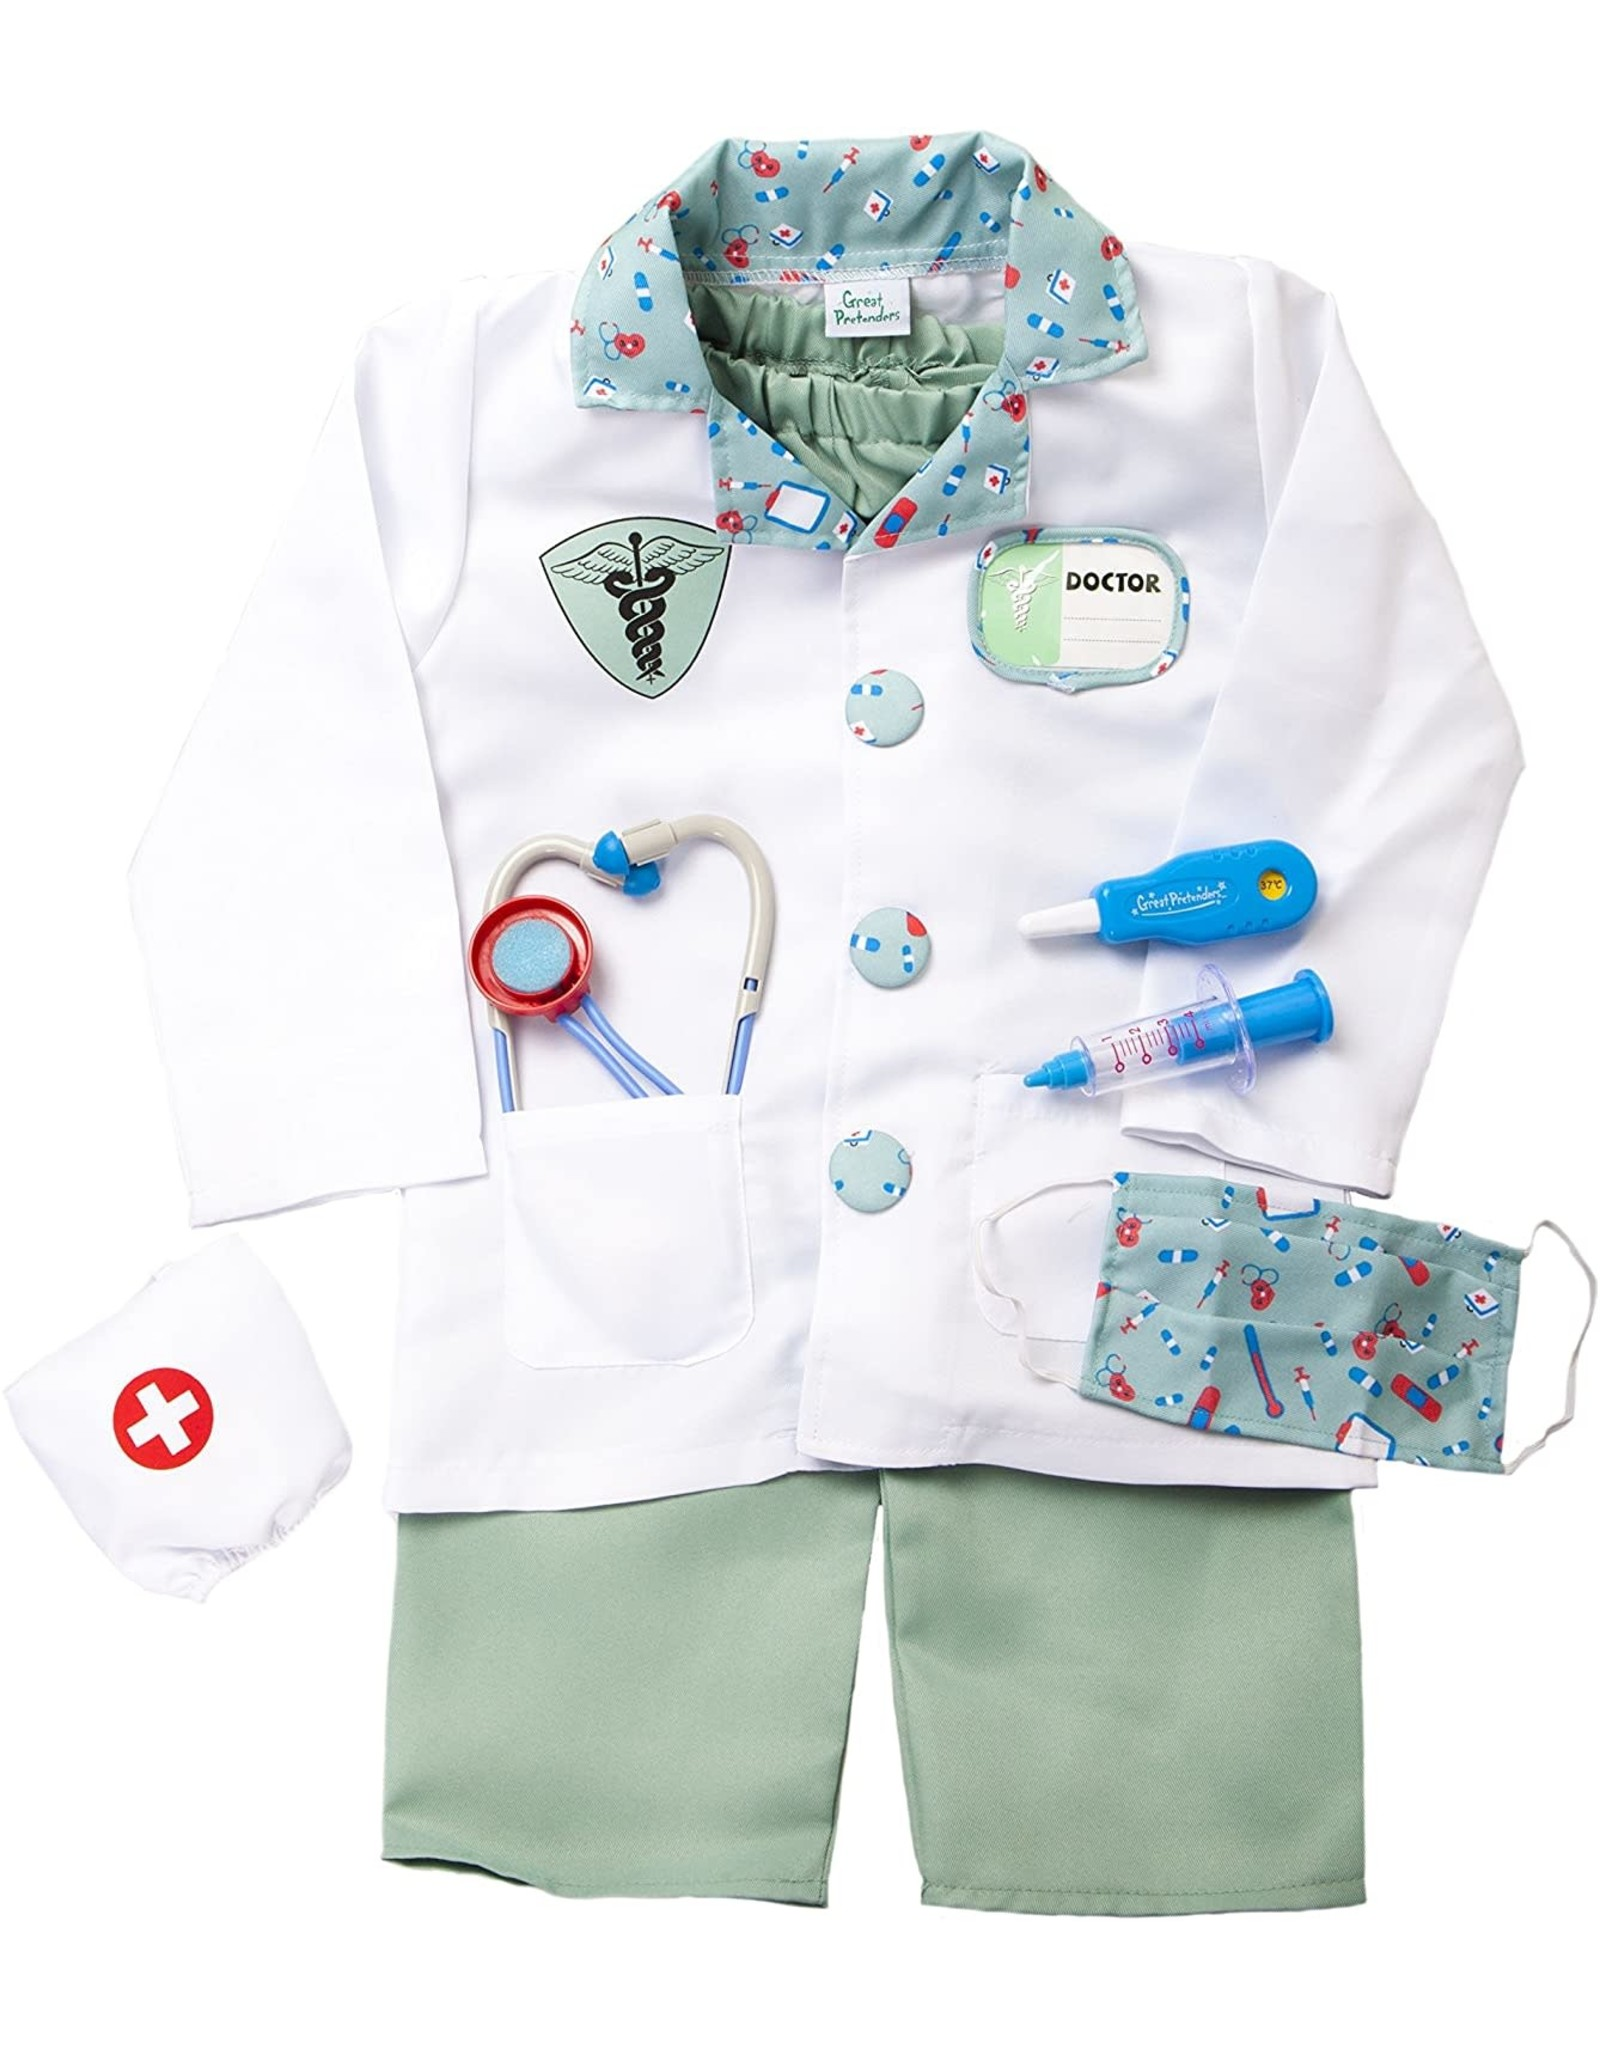 Great Pretenders Doctor with Accessories, 5-6